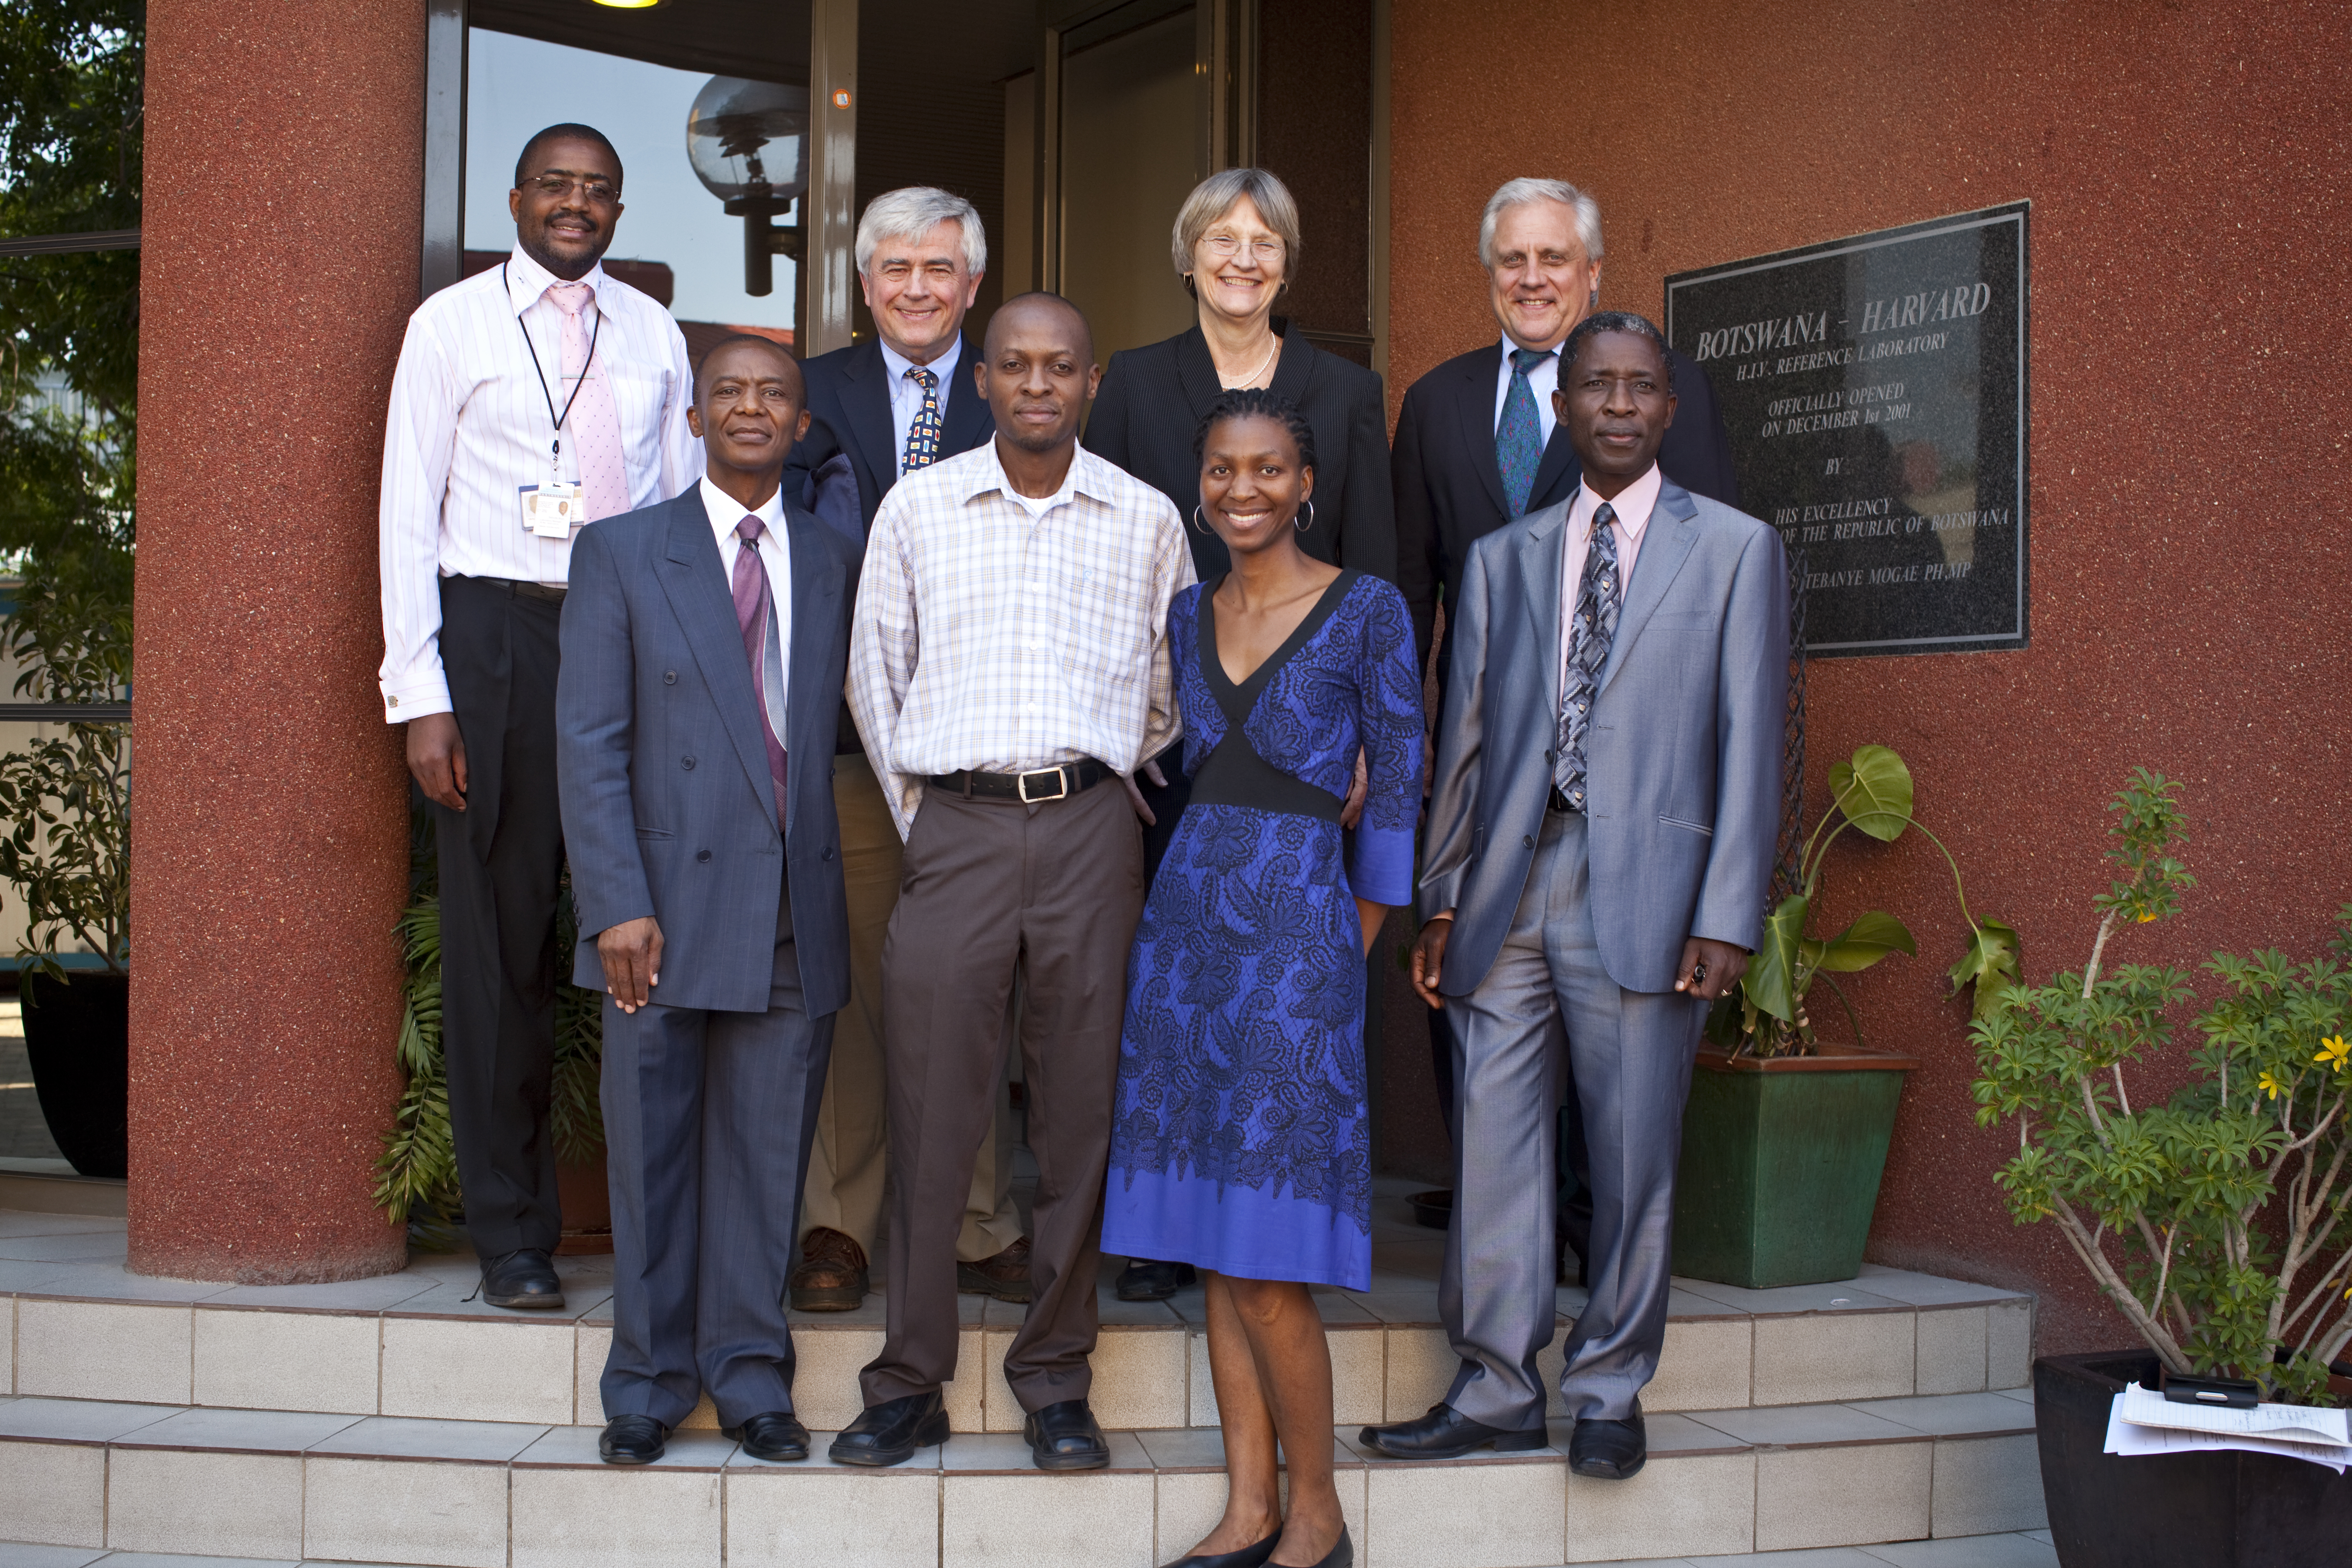 Botswana-Harvard AIDS Initiative for HIV Research and Education